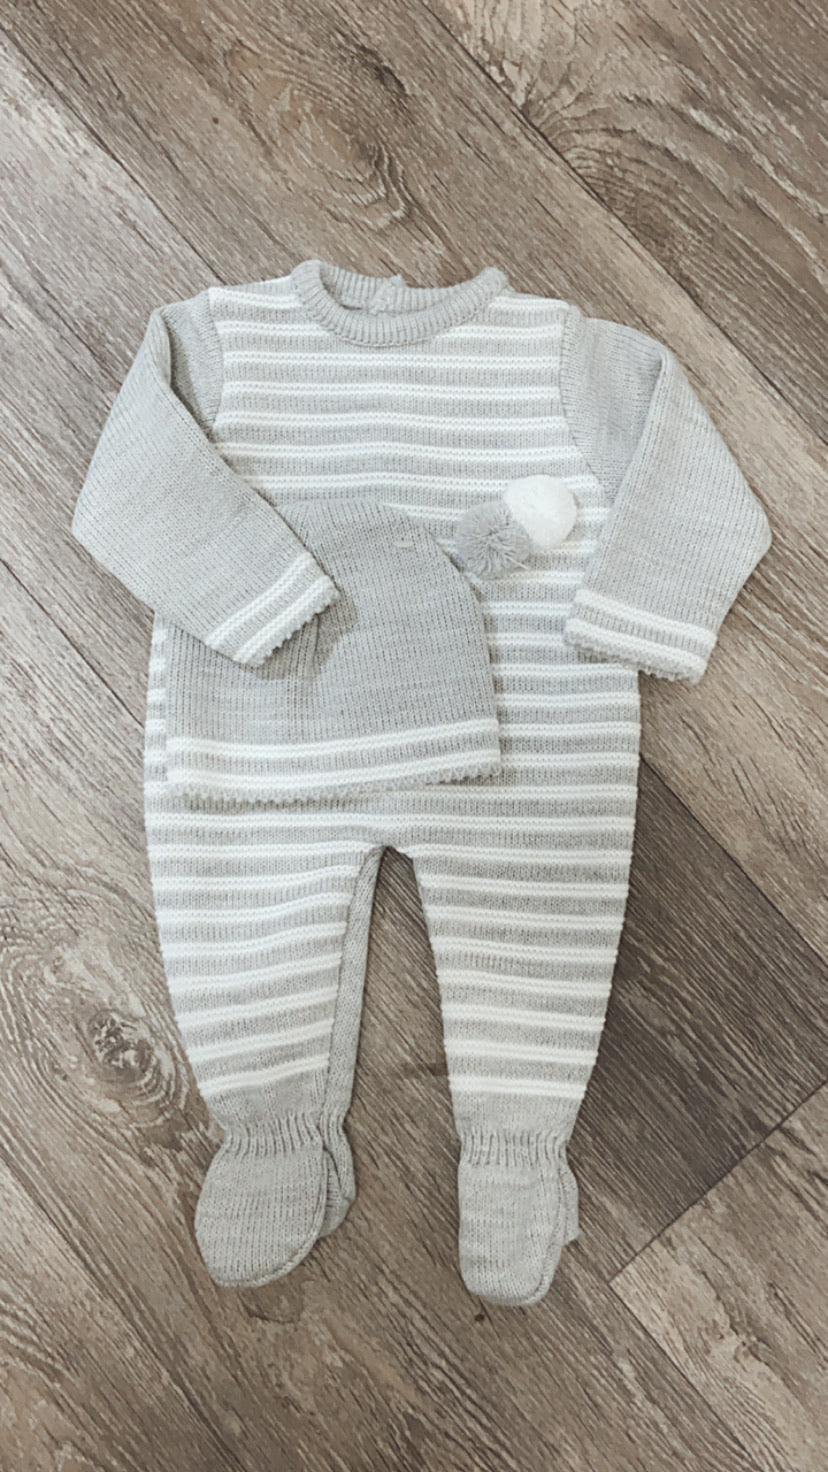 Unisex Knitted Pom Pom Set Grey with White Stripes